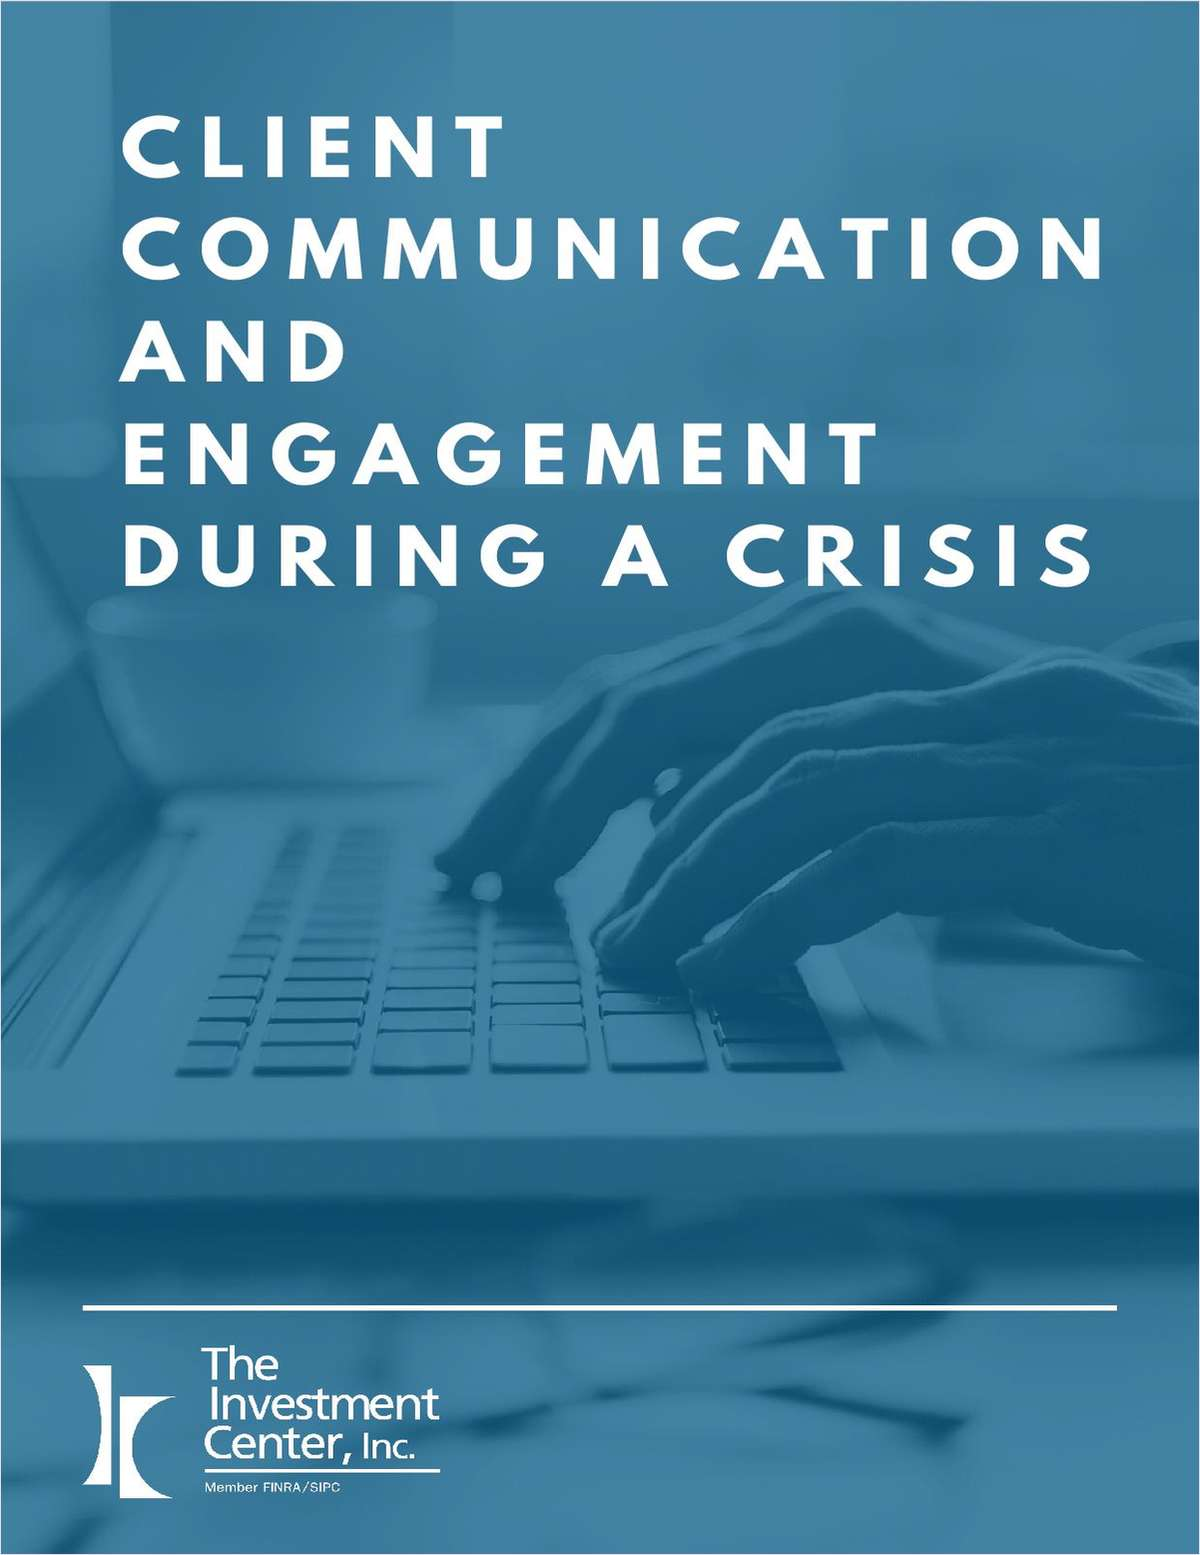 Client Communication and Engagement During a Crisis